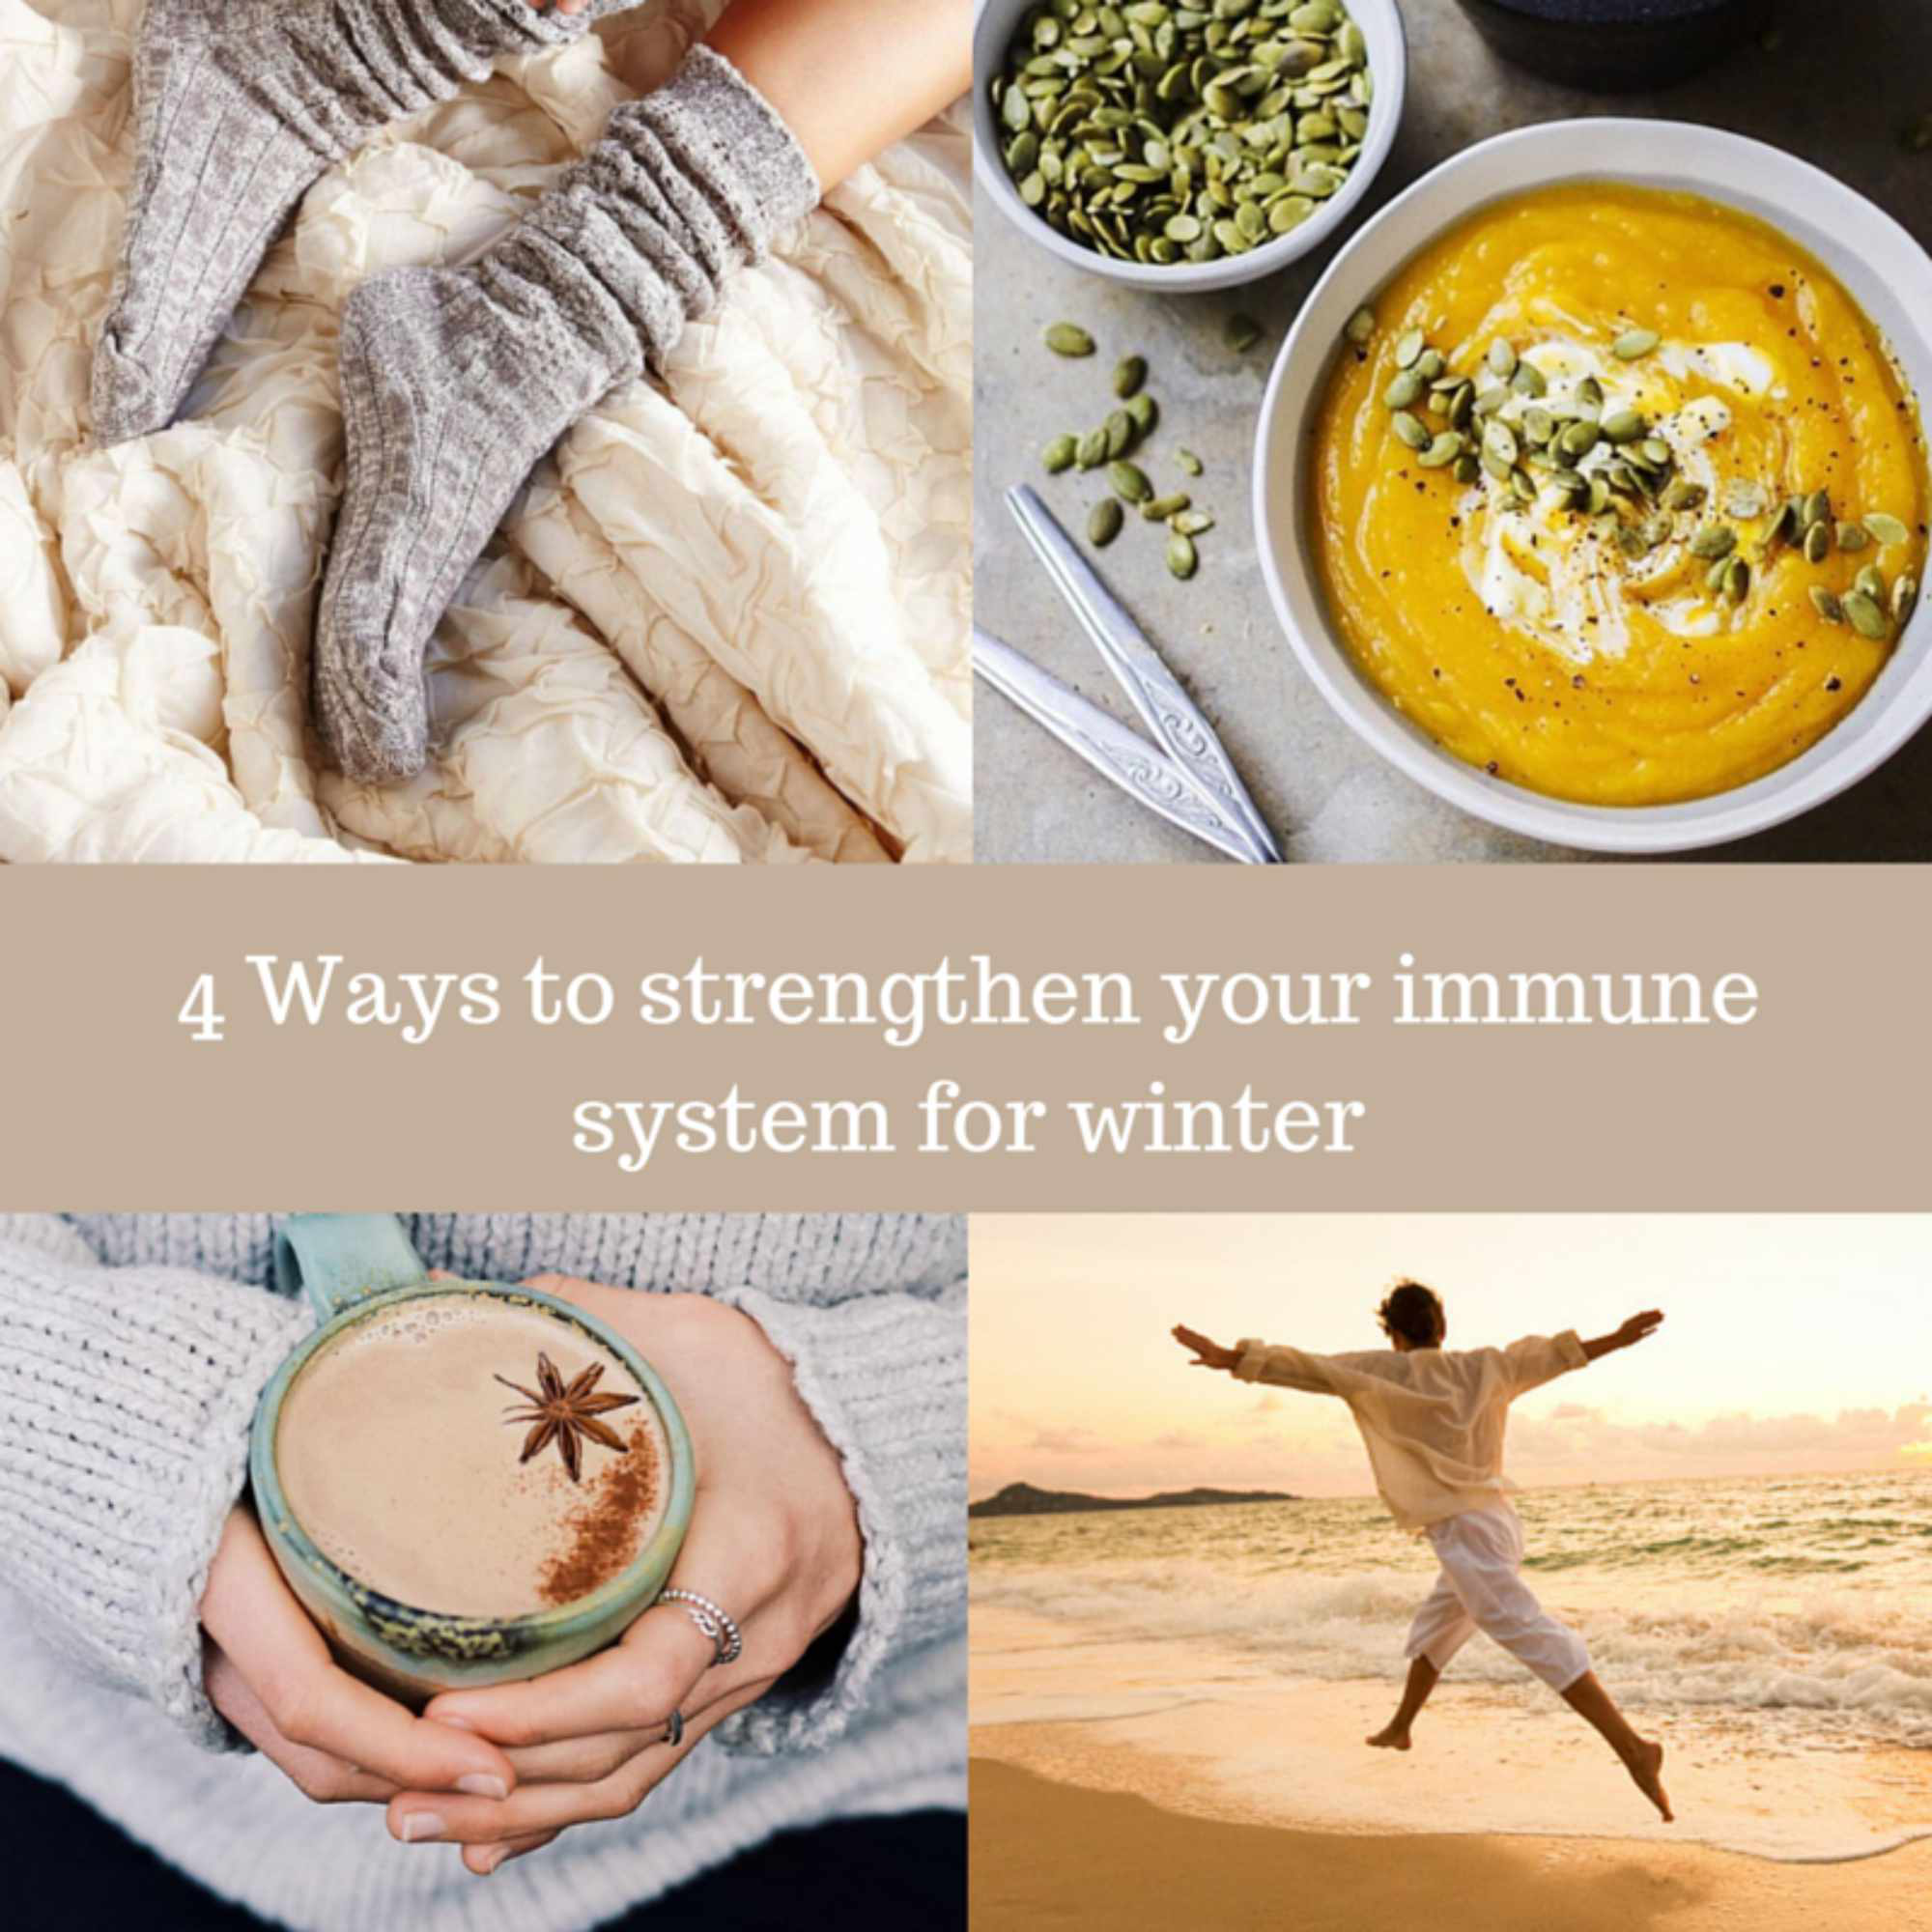 4 Ways to strengthen your immune system for winter